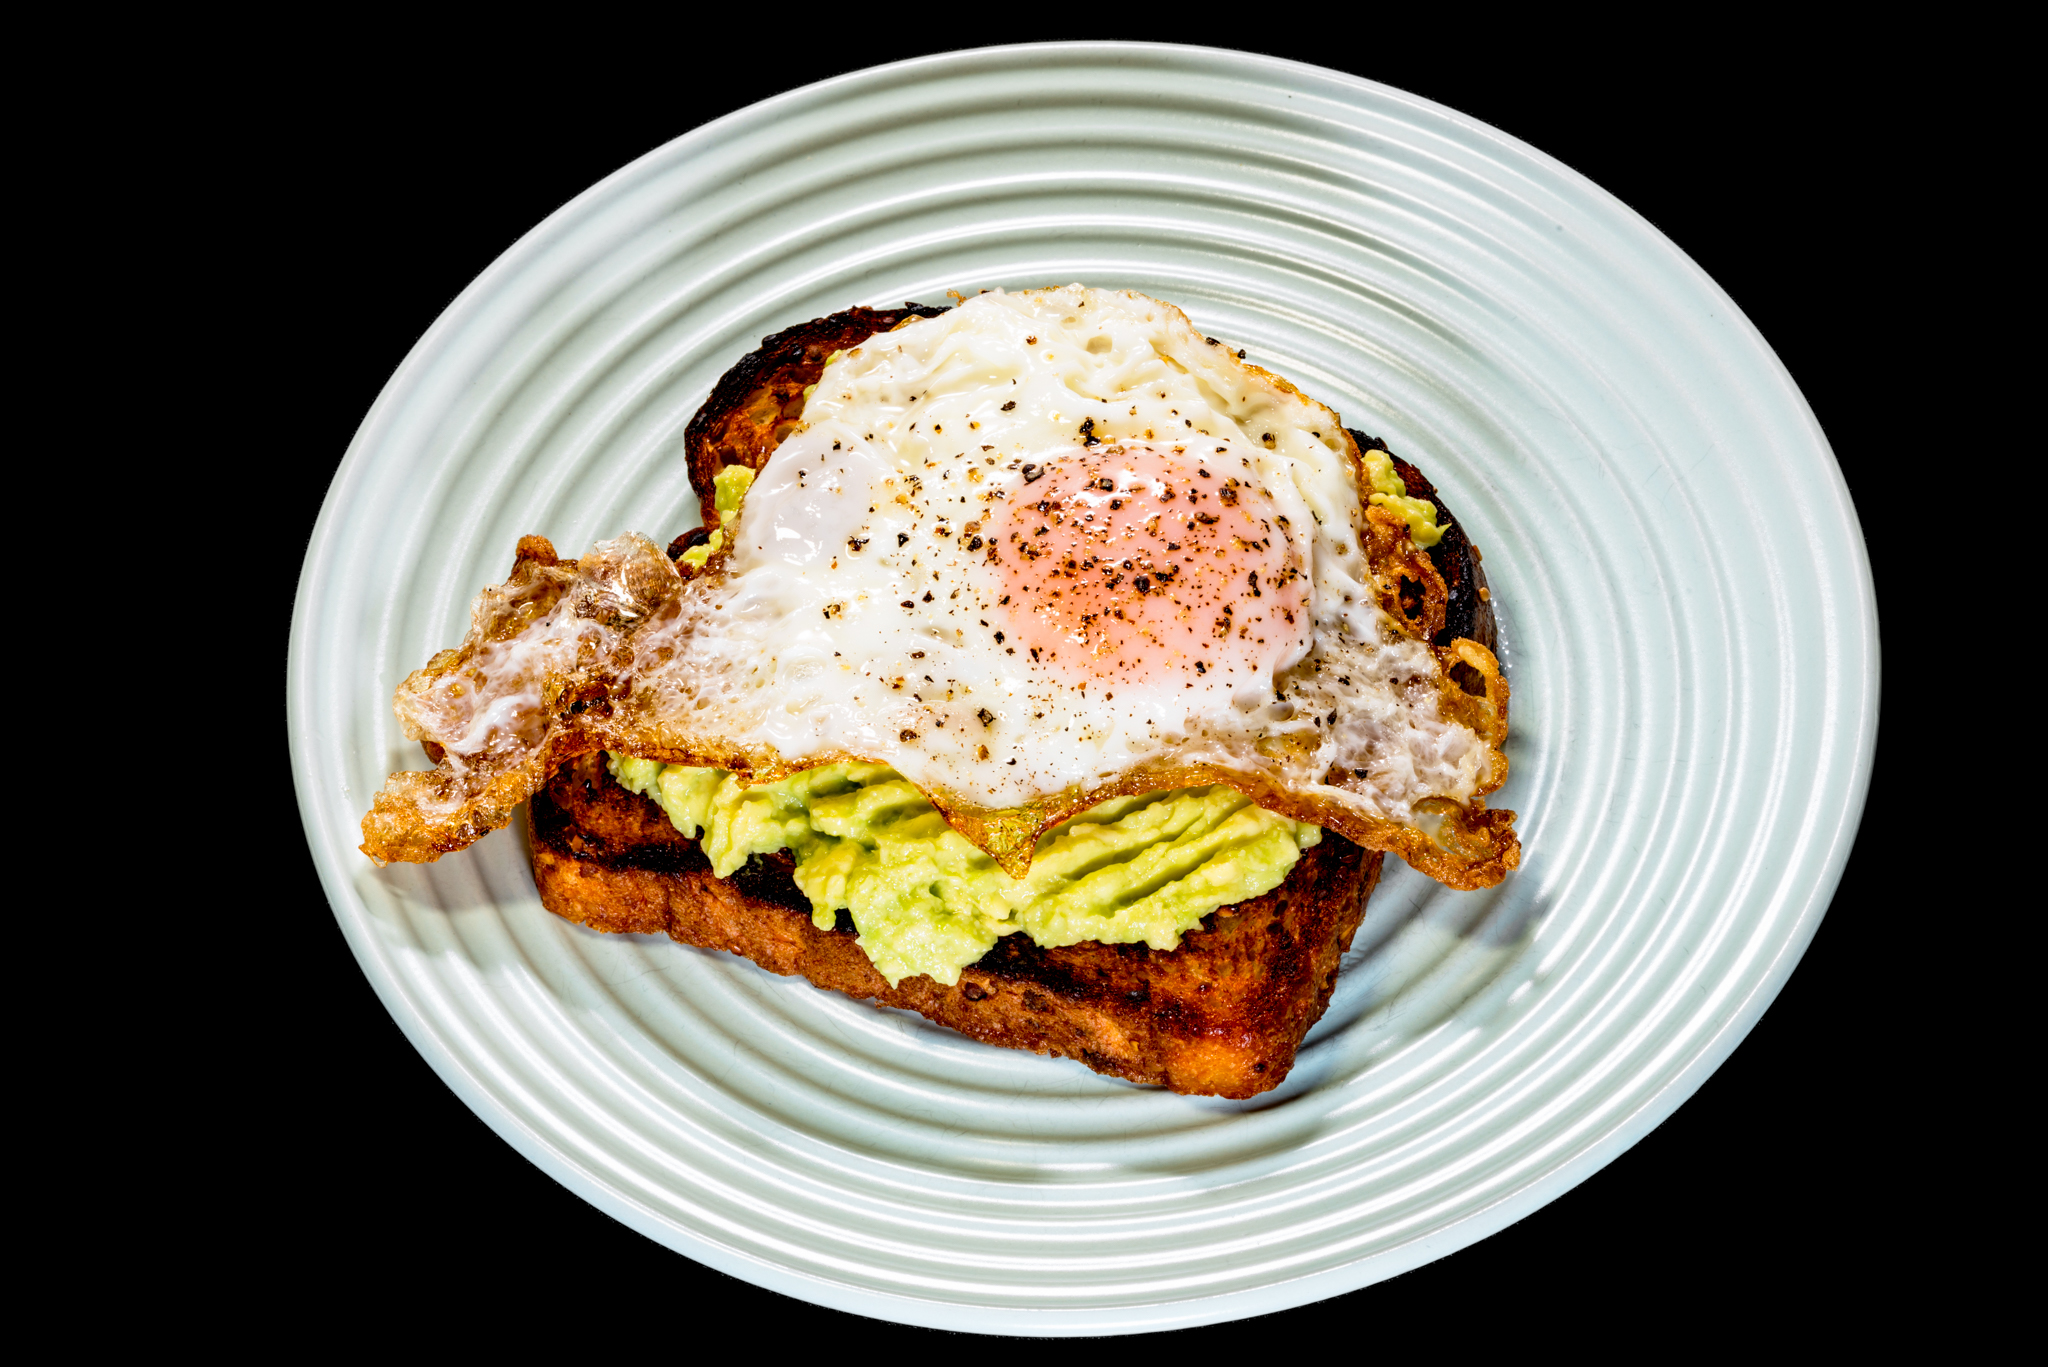 Avocado on fried bread with a fried egg Gary Lum